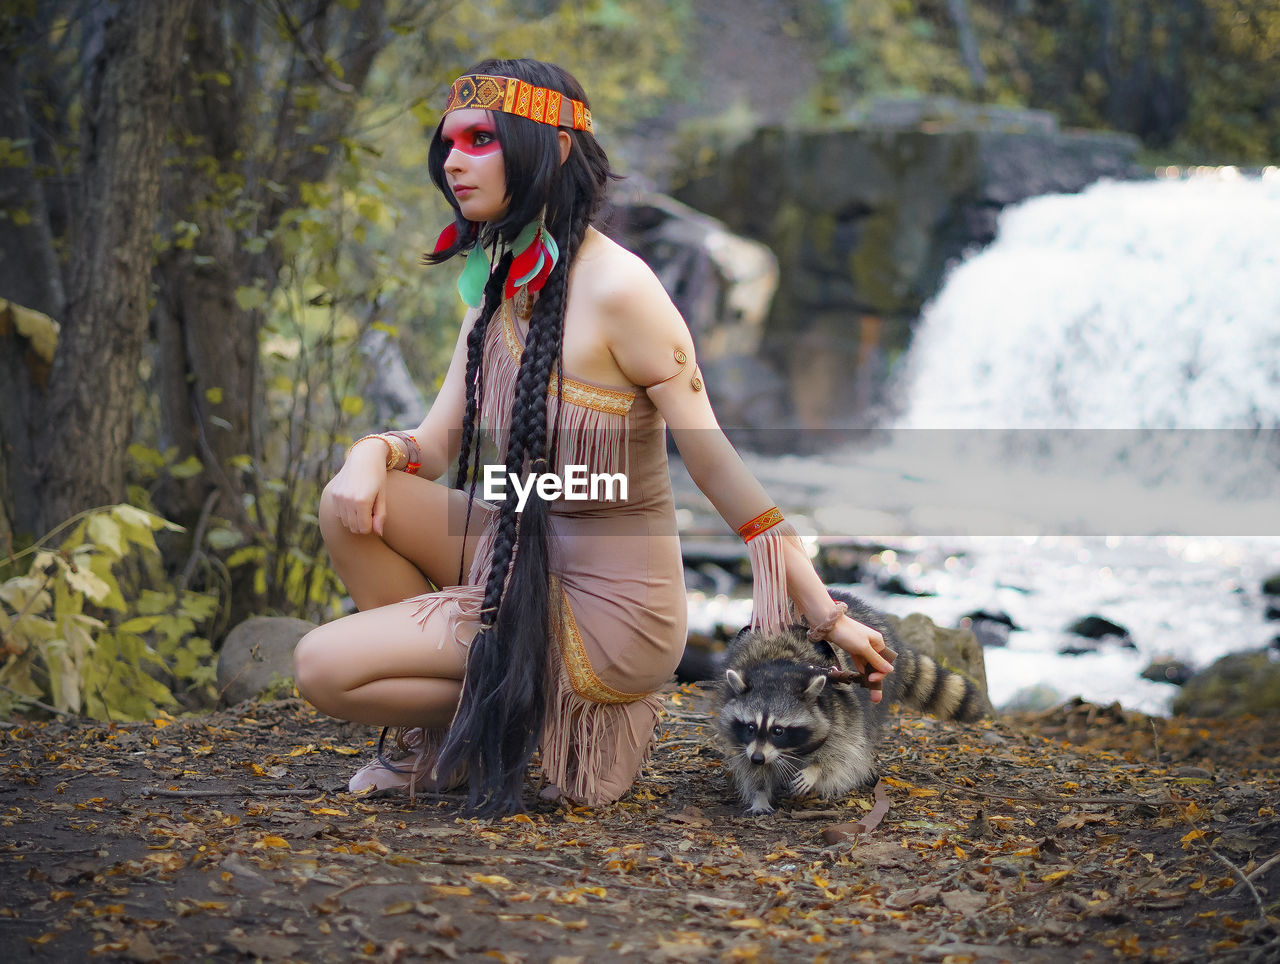 Young Woman In Traditional Clothing Looking Away While Crouching By Raccoon In Forest